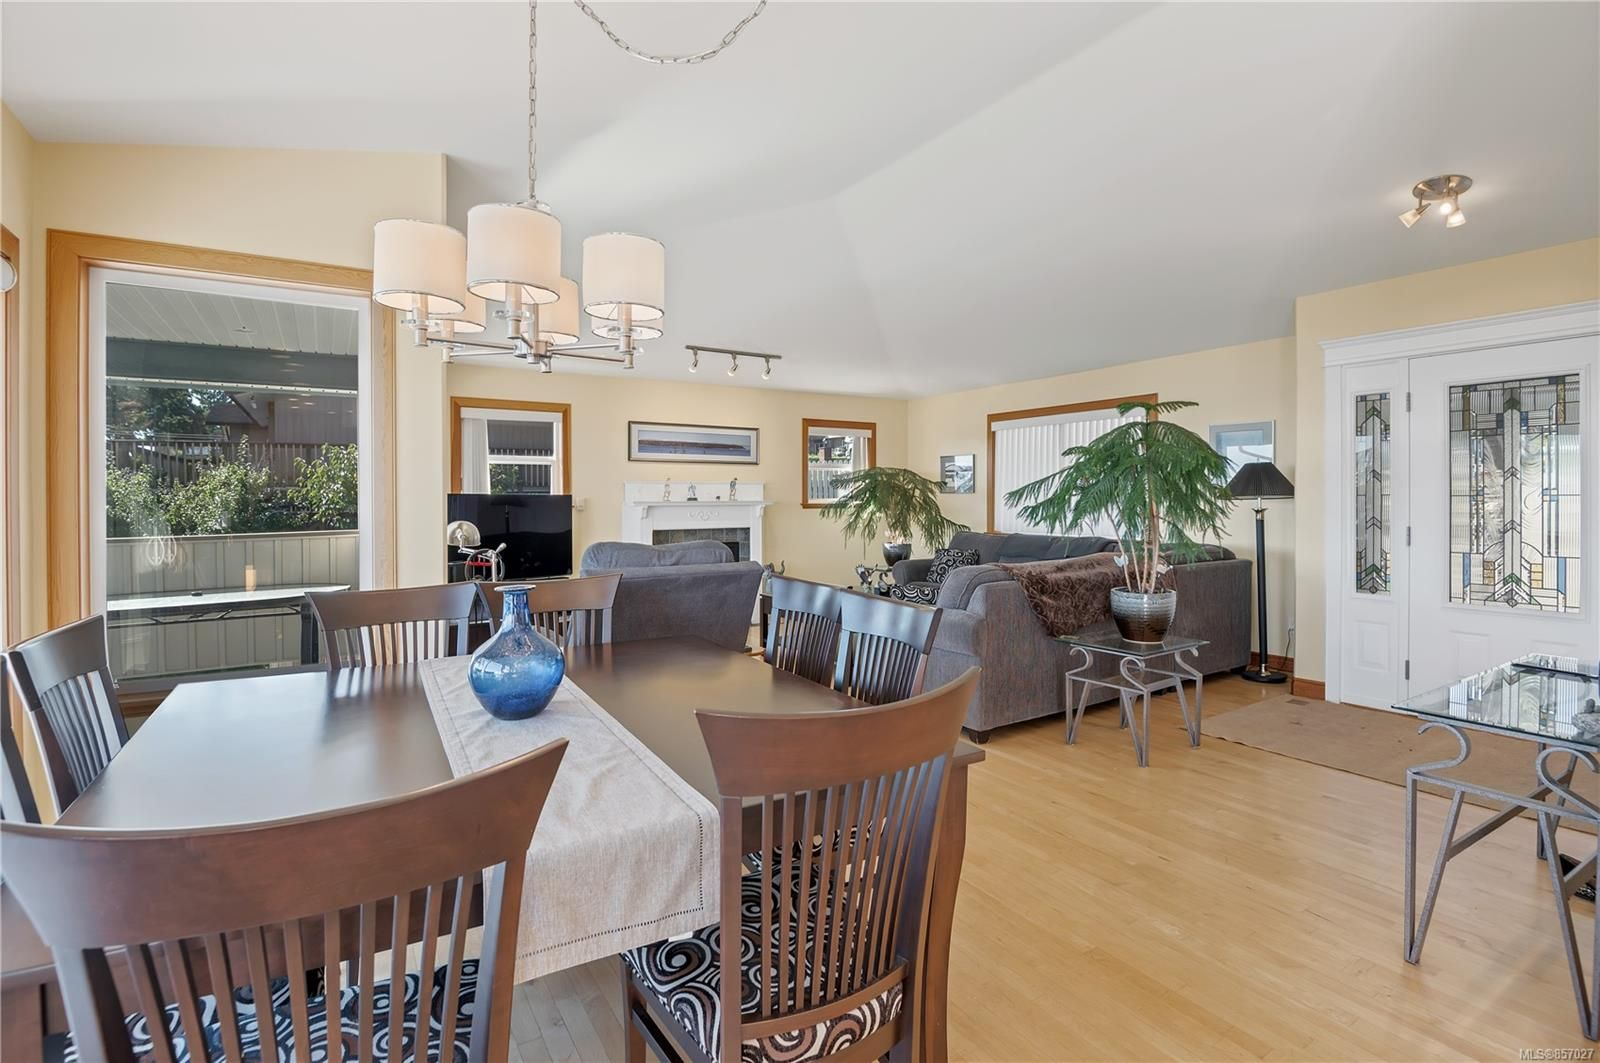 Photo 15: Photos: 253 S Alder St in : CR Campbell River South House for sale (Campbell River)  : MLS®# 857027